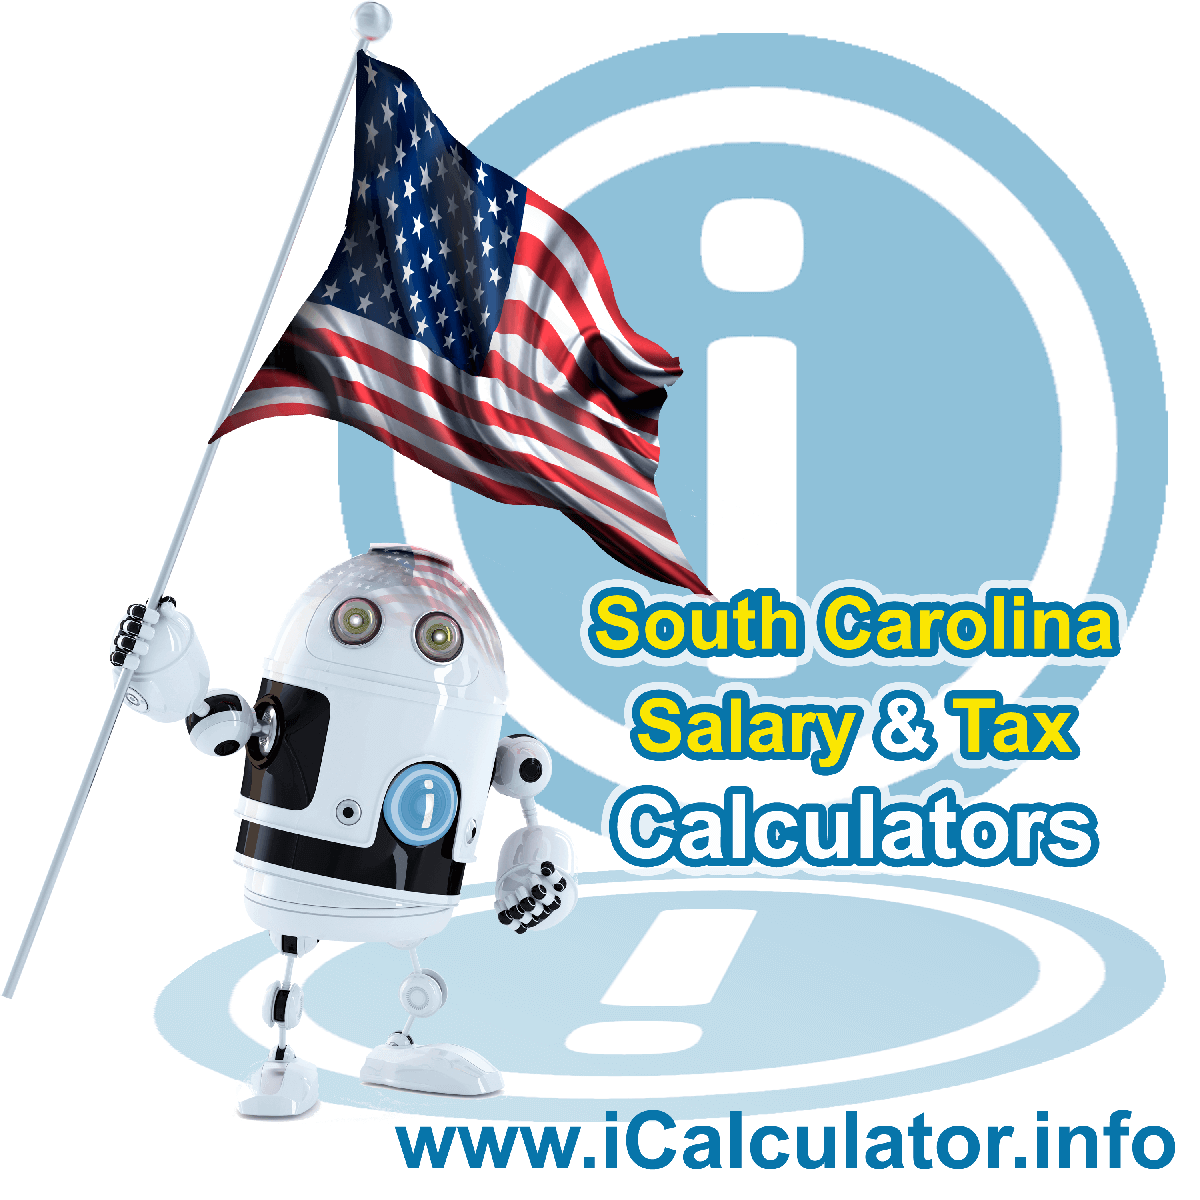 South Carolina Salary Calculator 2019 | iCalculator | The South Carolina Salary Calculator allows you to quickly calculate your salary after tax including South Carolina State Tax, Federal State Tax, Medicare Deductions, Social Security, Capital Gains and other income tax and salary deductions complete with supporting South Carolina state tax tables